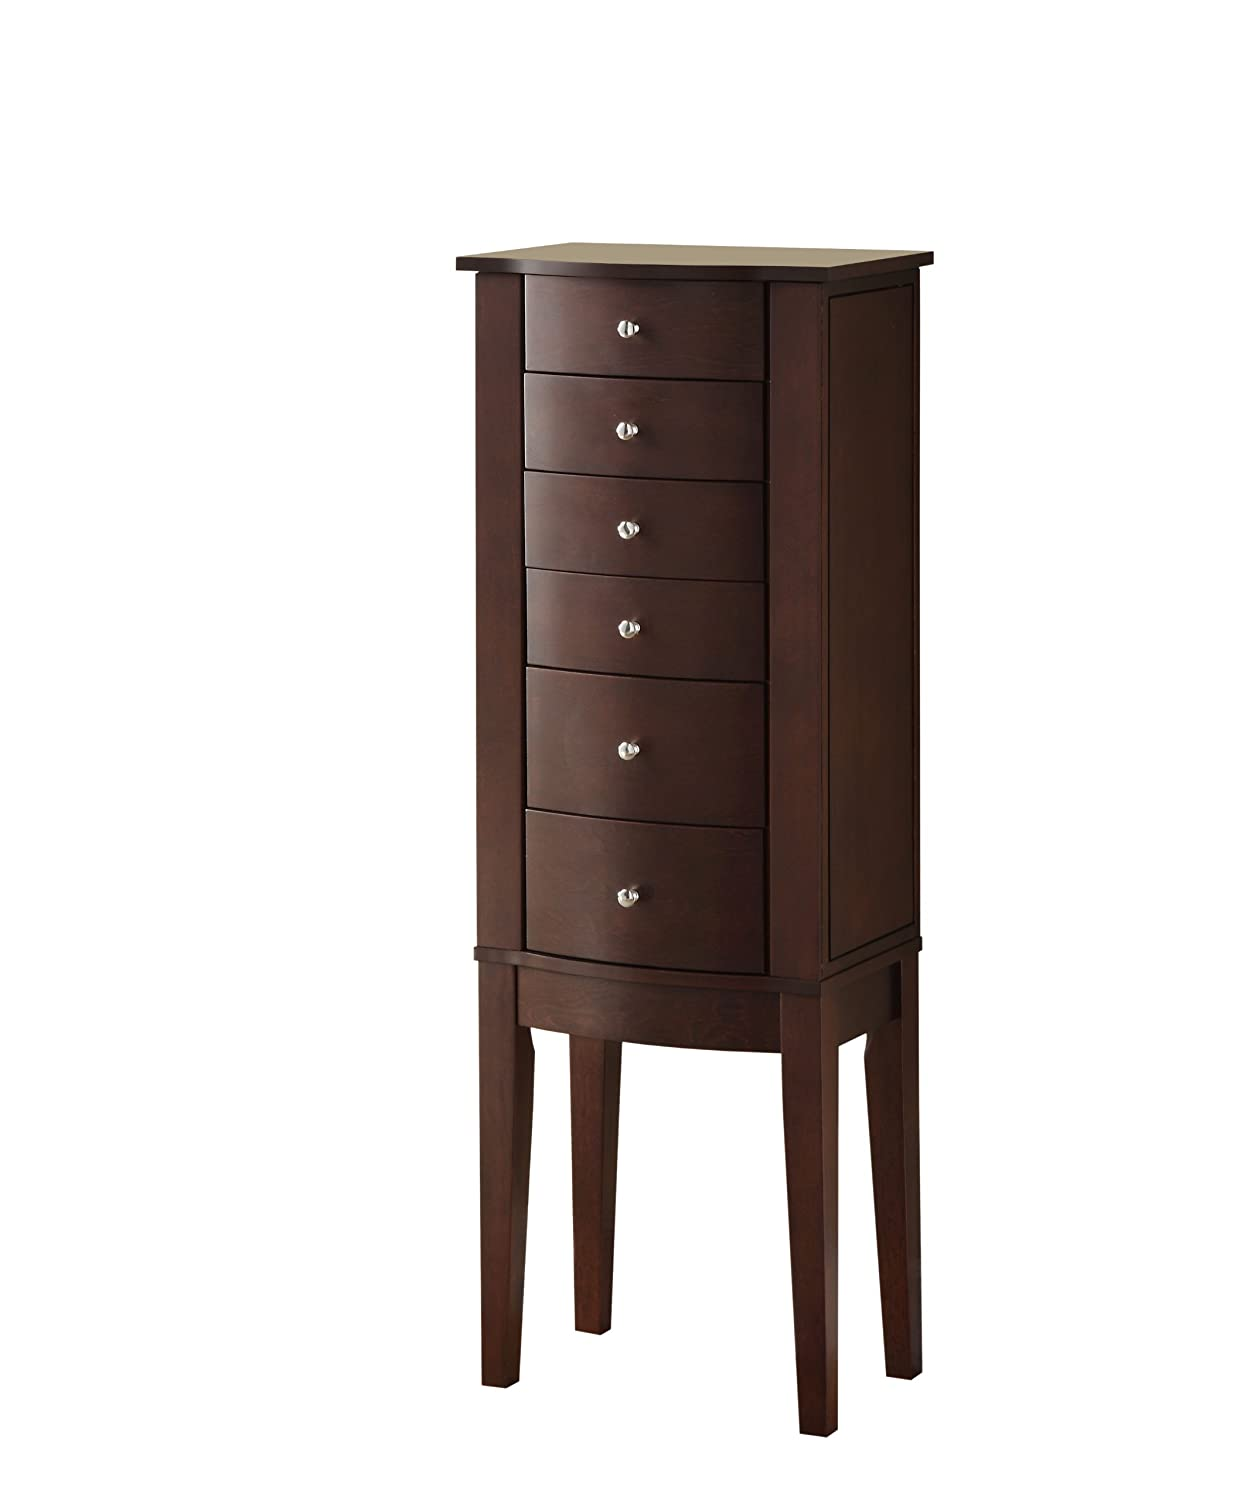 Powell 14J8123O Olivia Jewelry Armoire L. Powell Acquisition Corp.